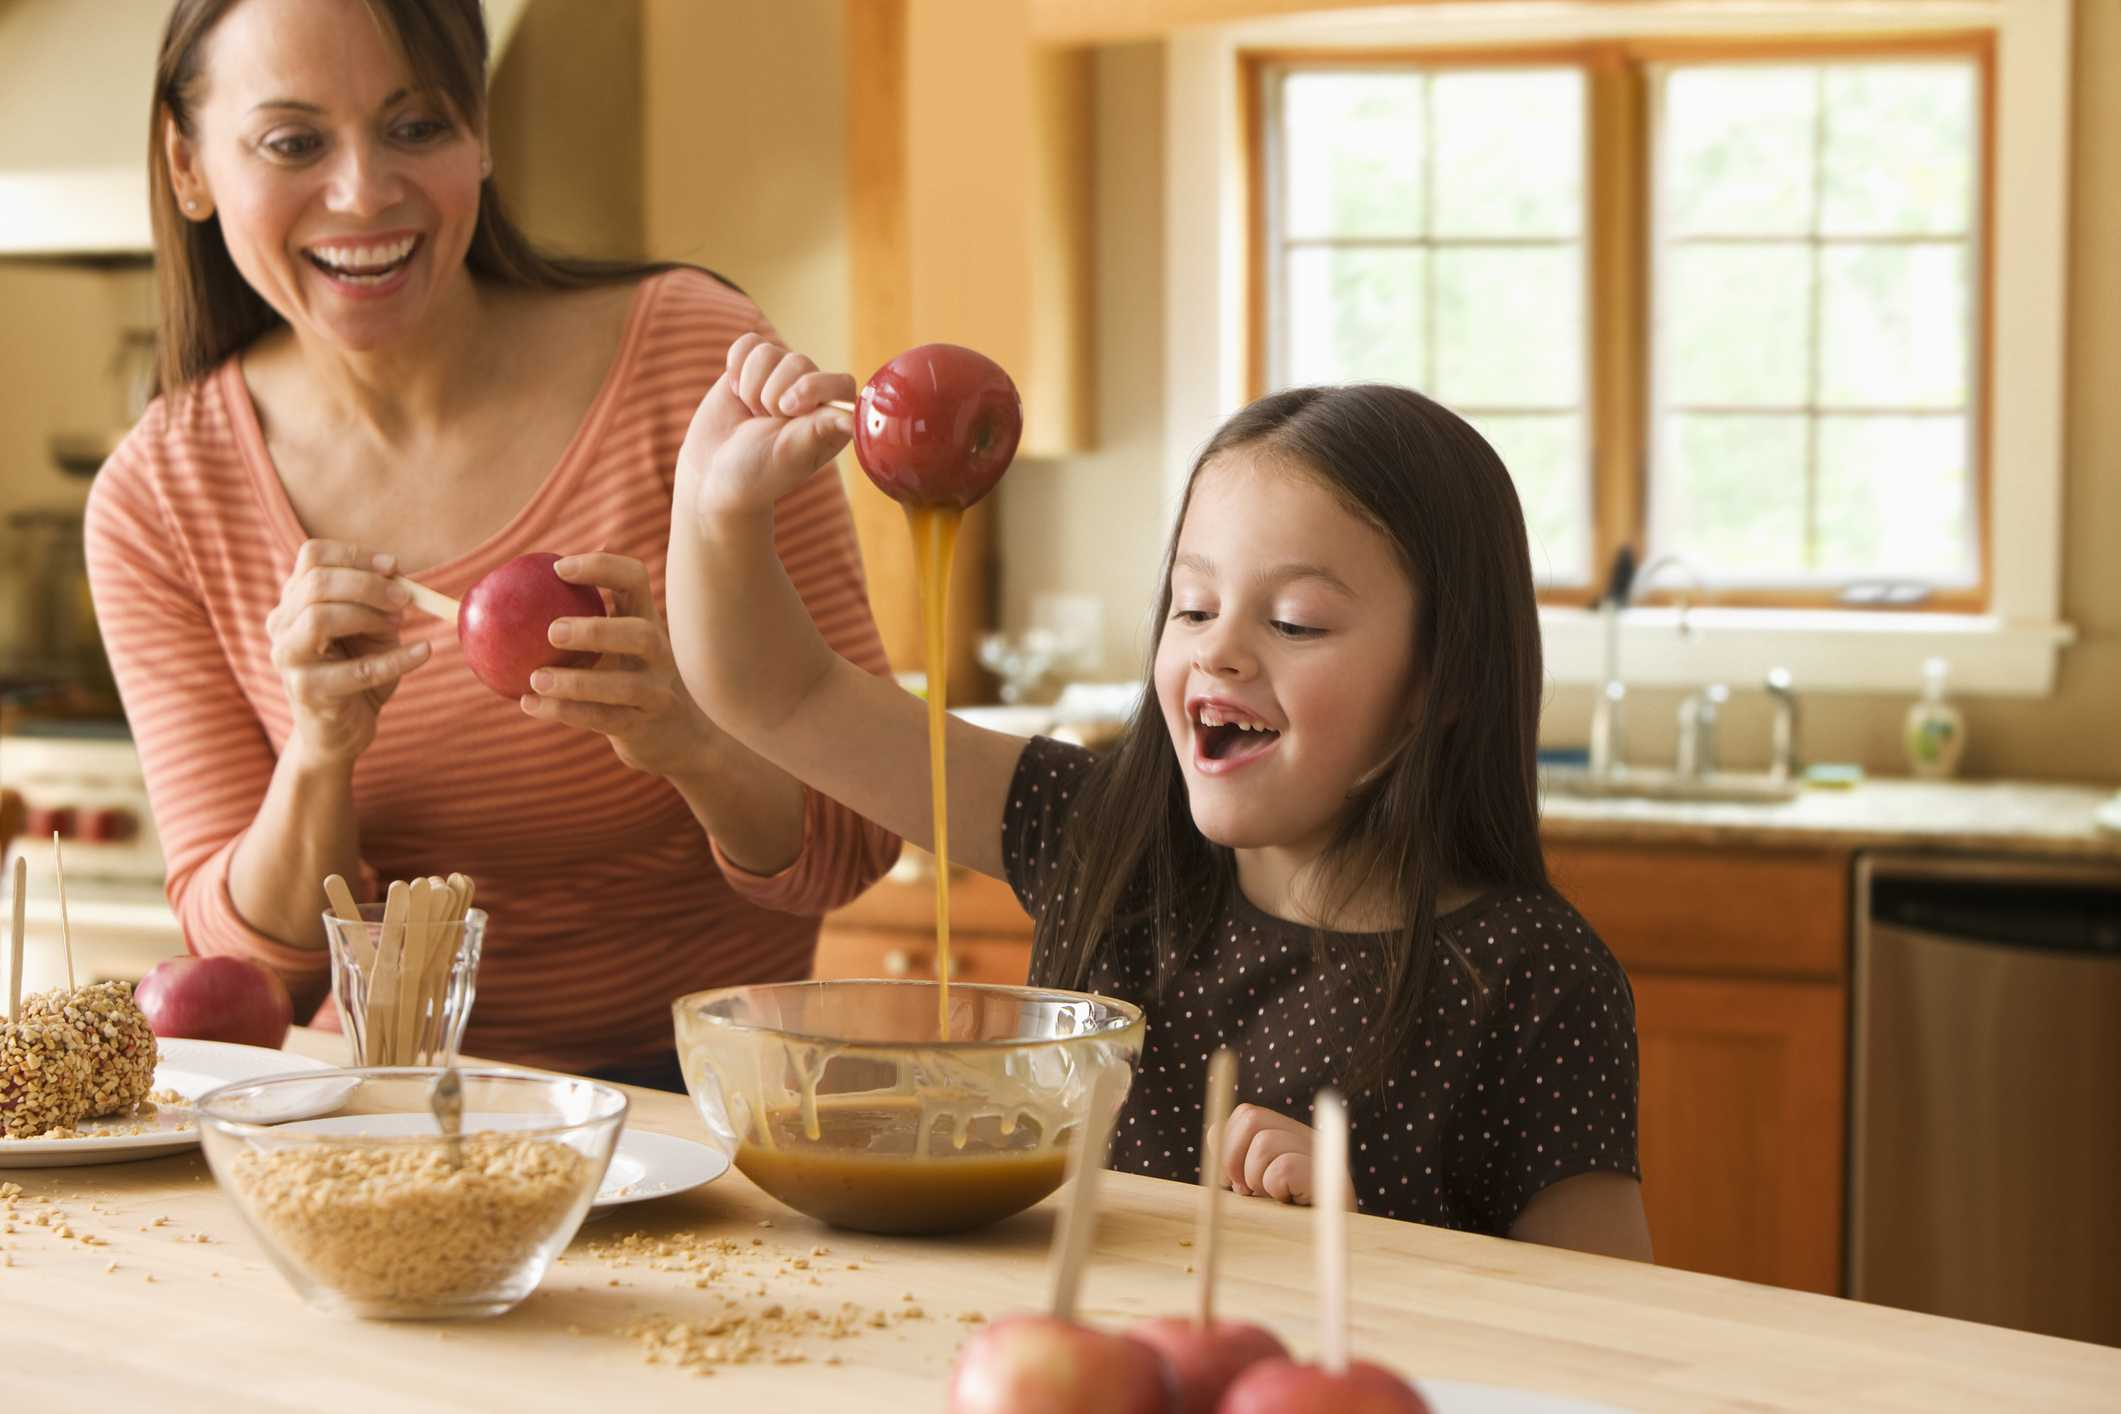 Mom and child making caramel apples